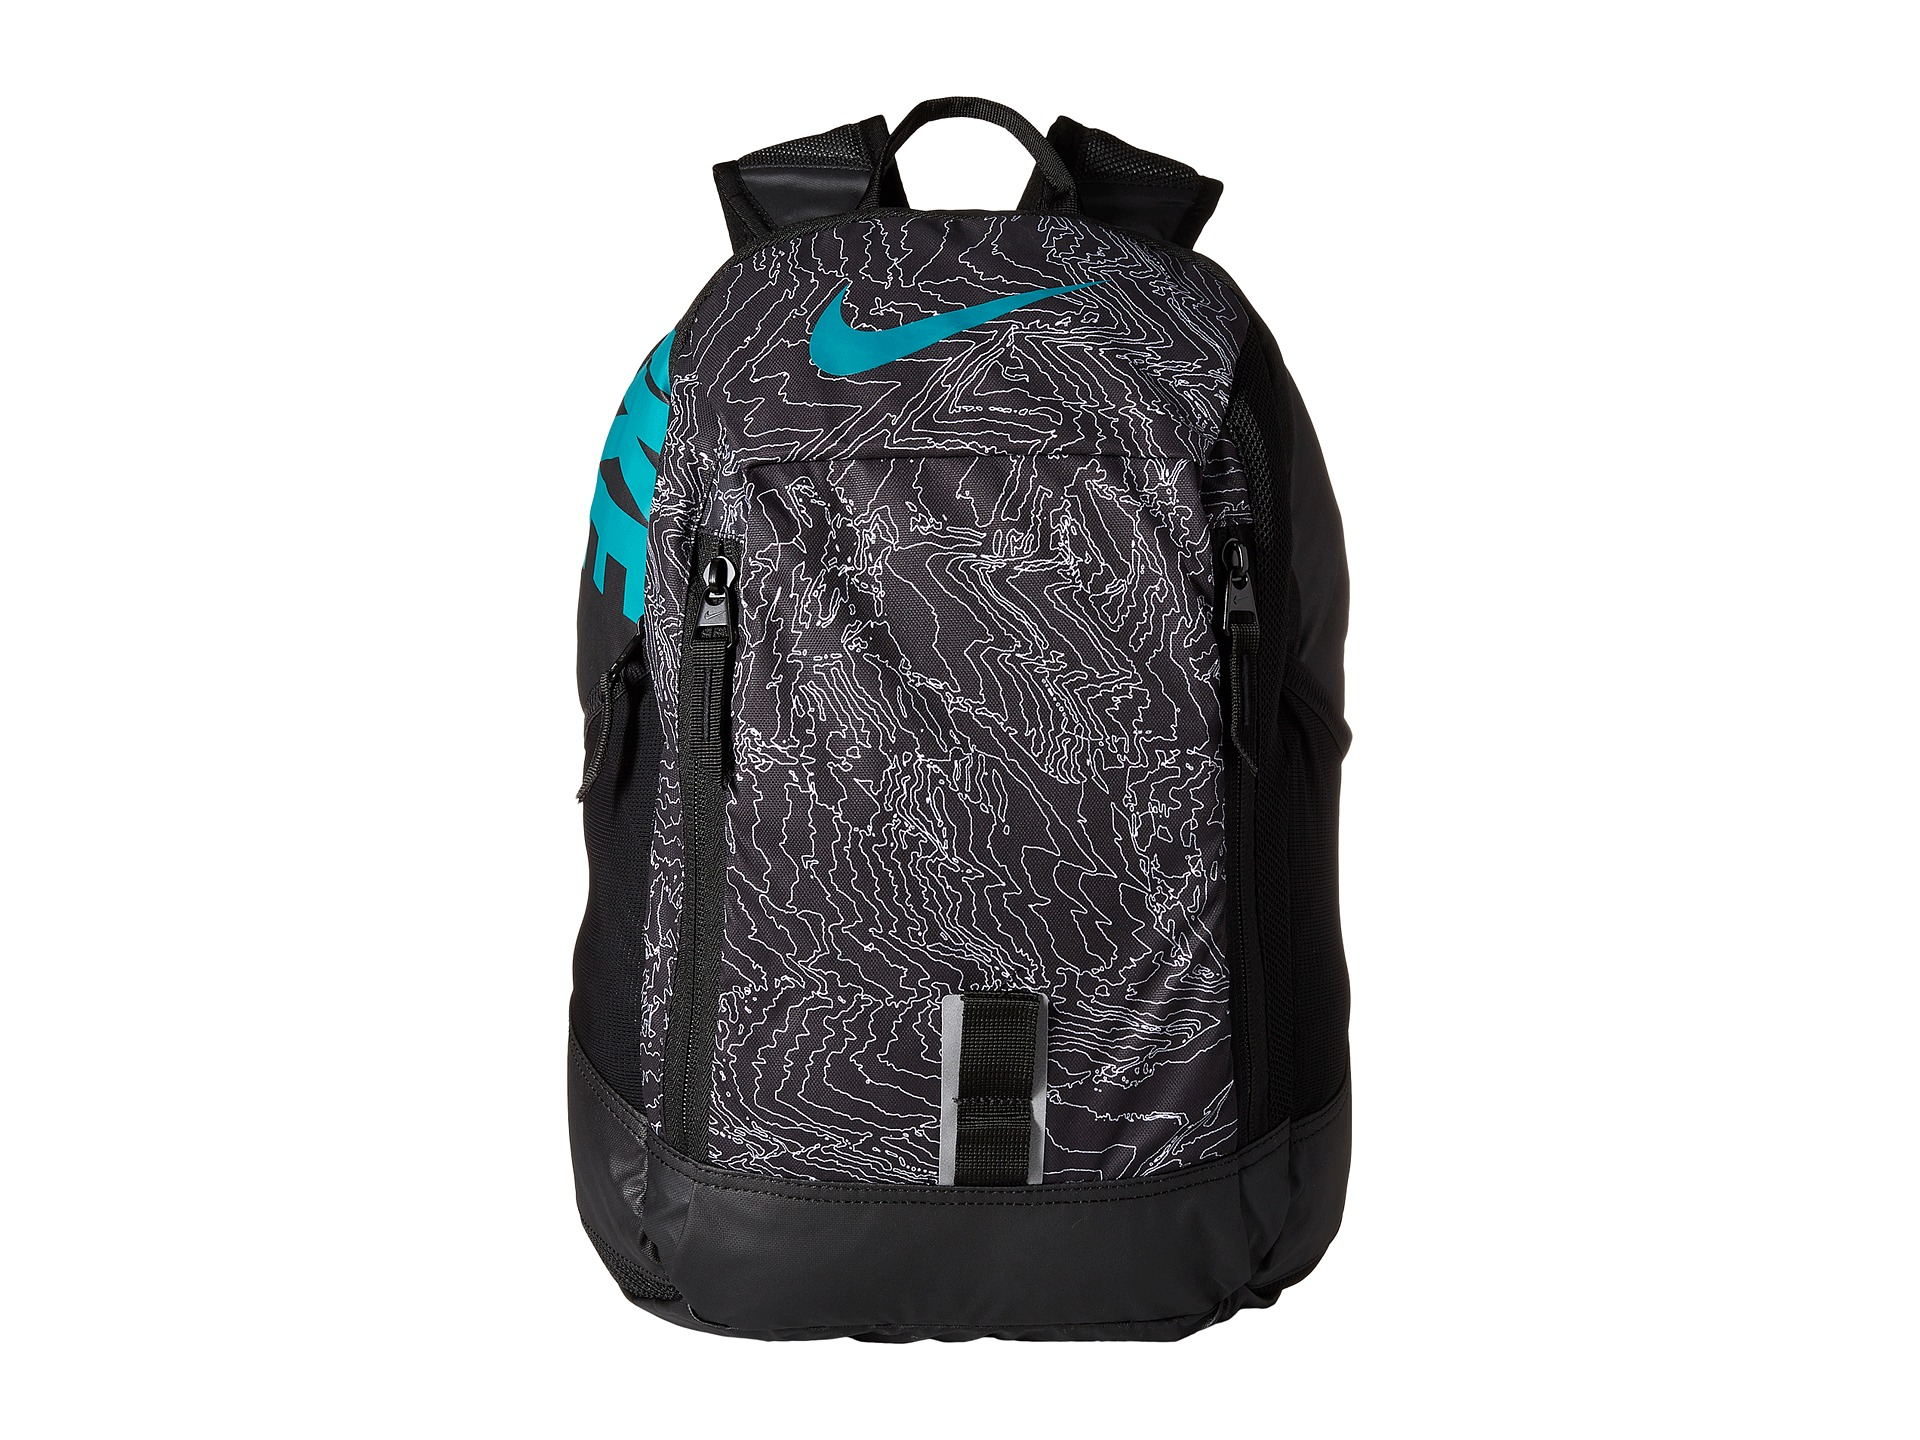 598090d03c Lyst - Nike Young Athletes Alpha Adpt Rise Print Backpack in Black ...